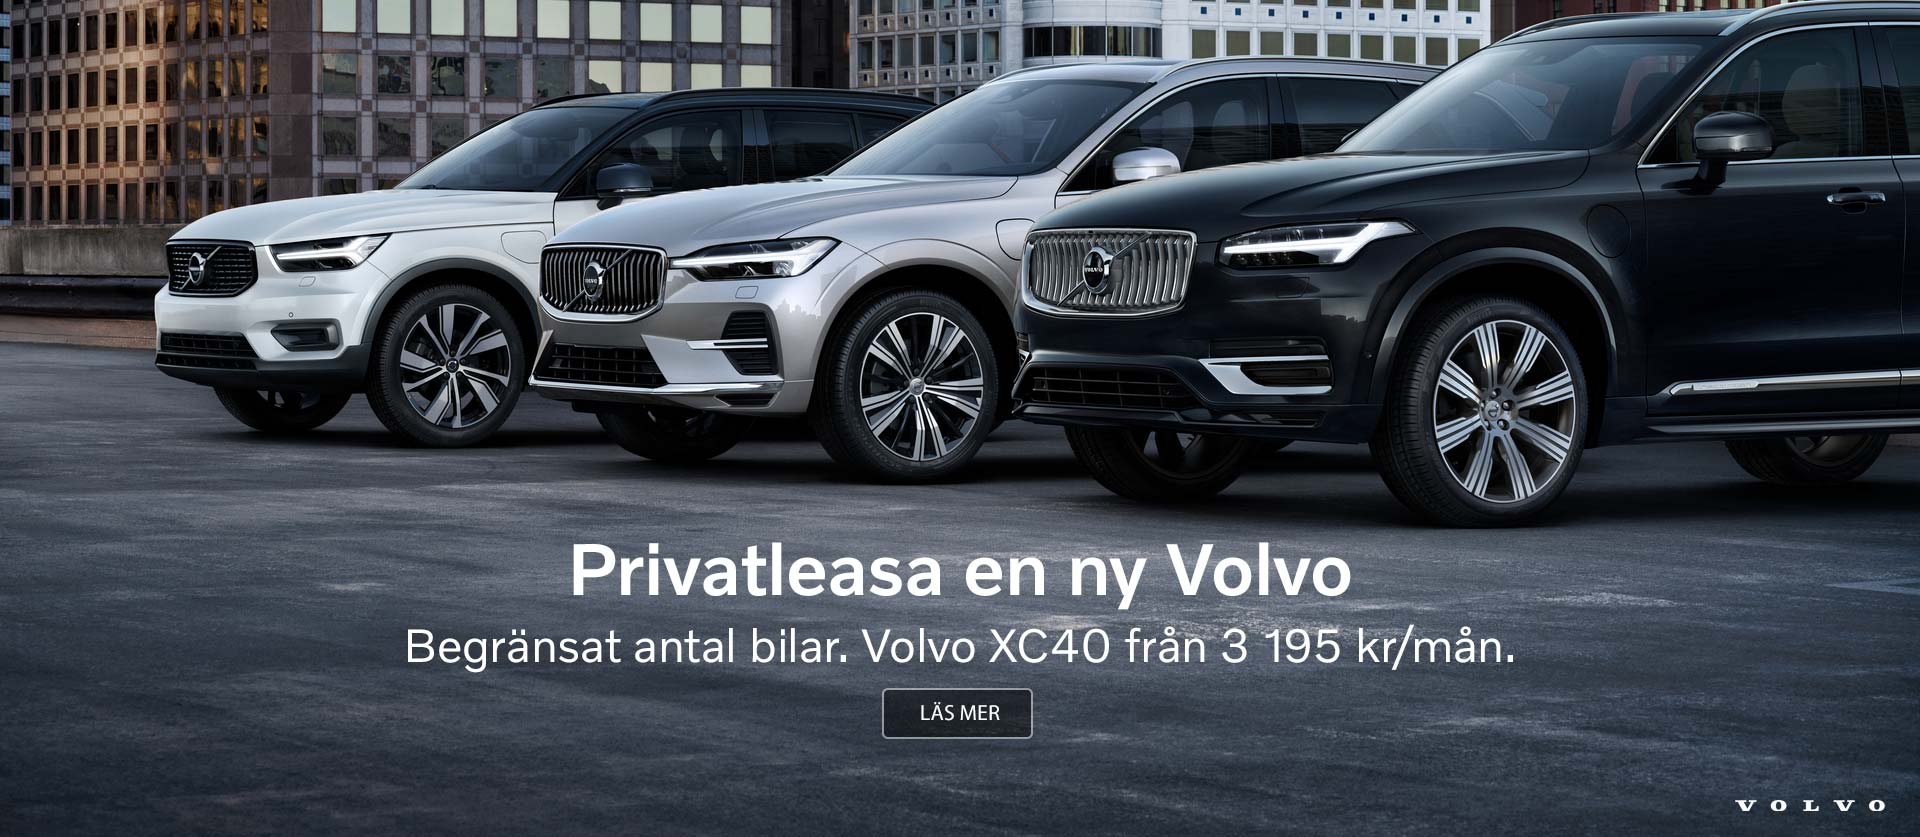 Volvo nationell privatleasing